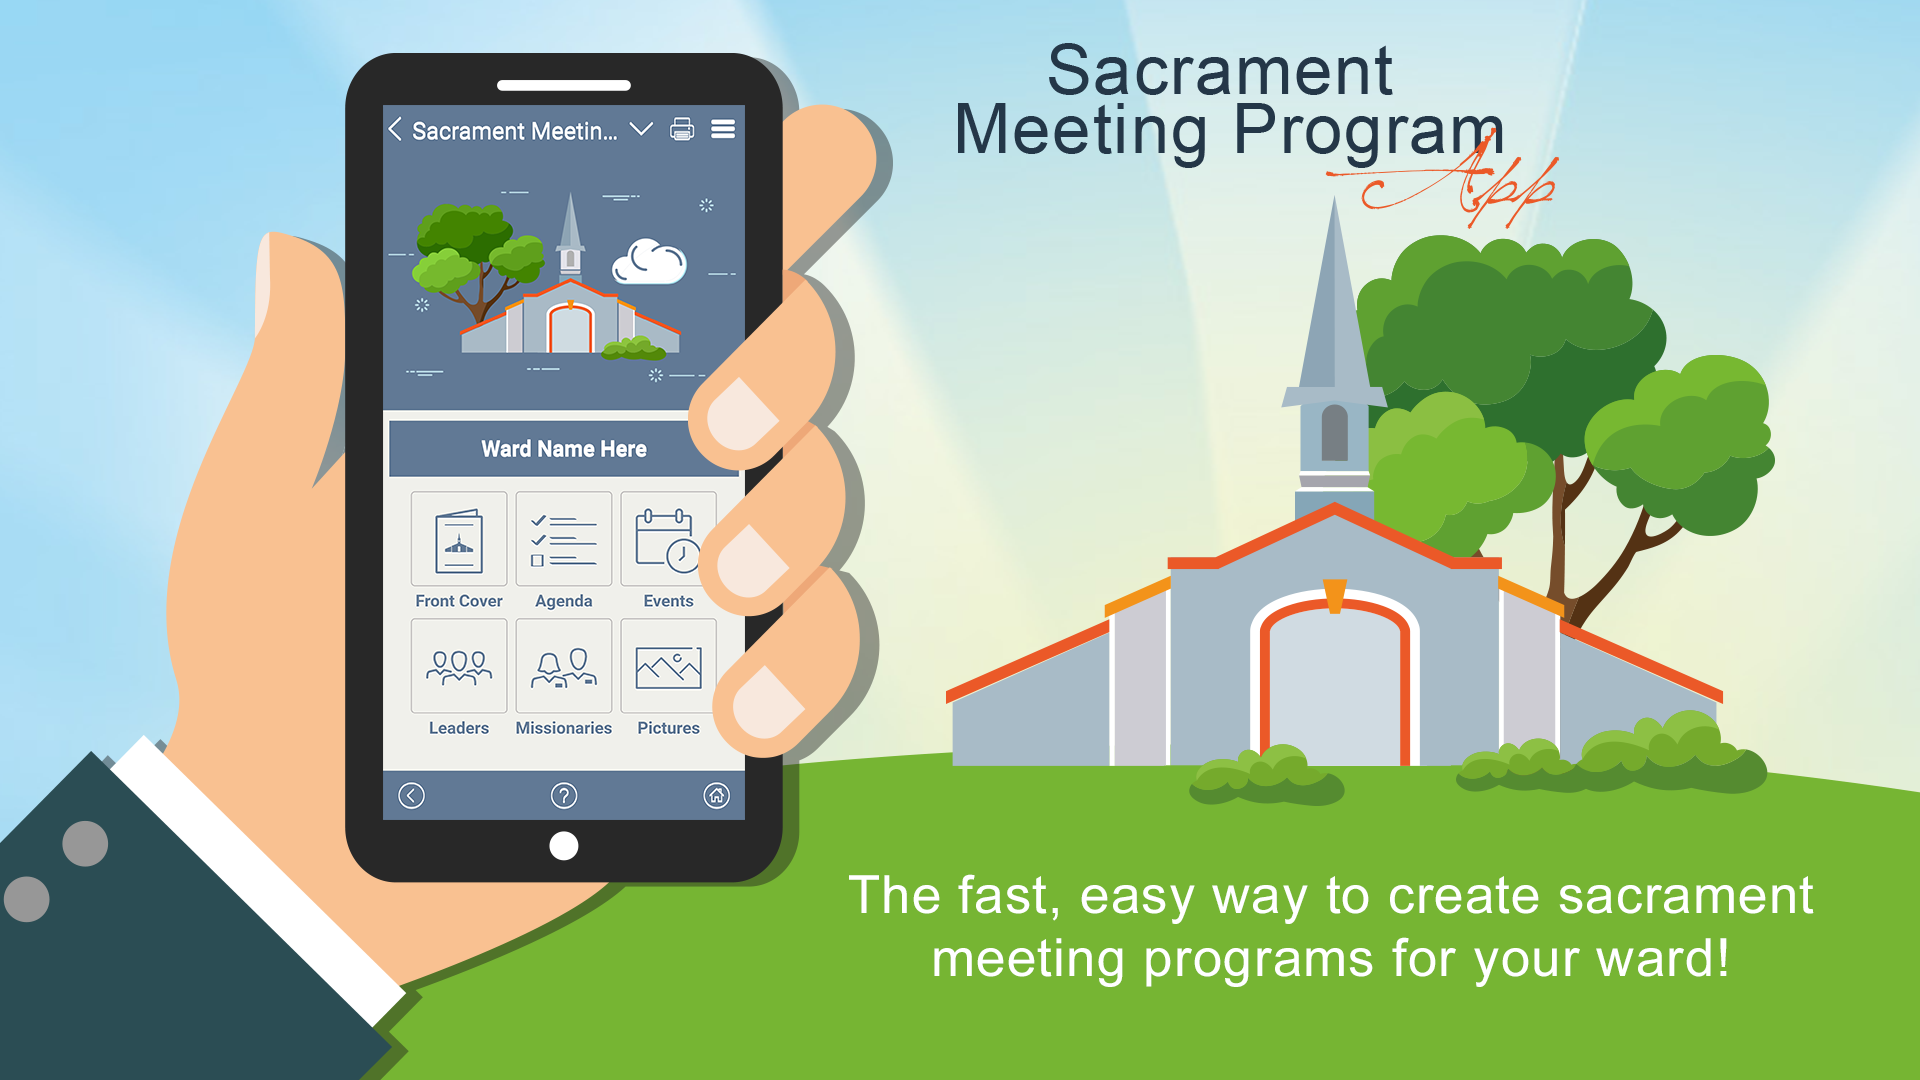 Sacrament Meeting Program